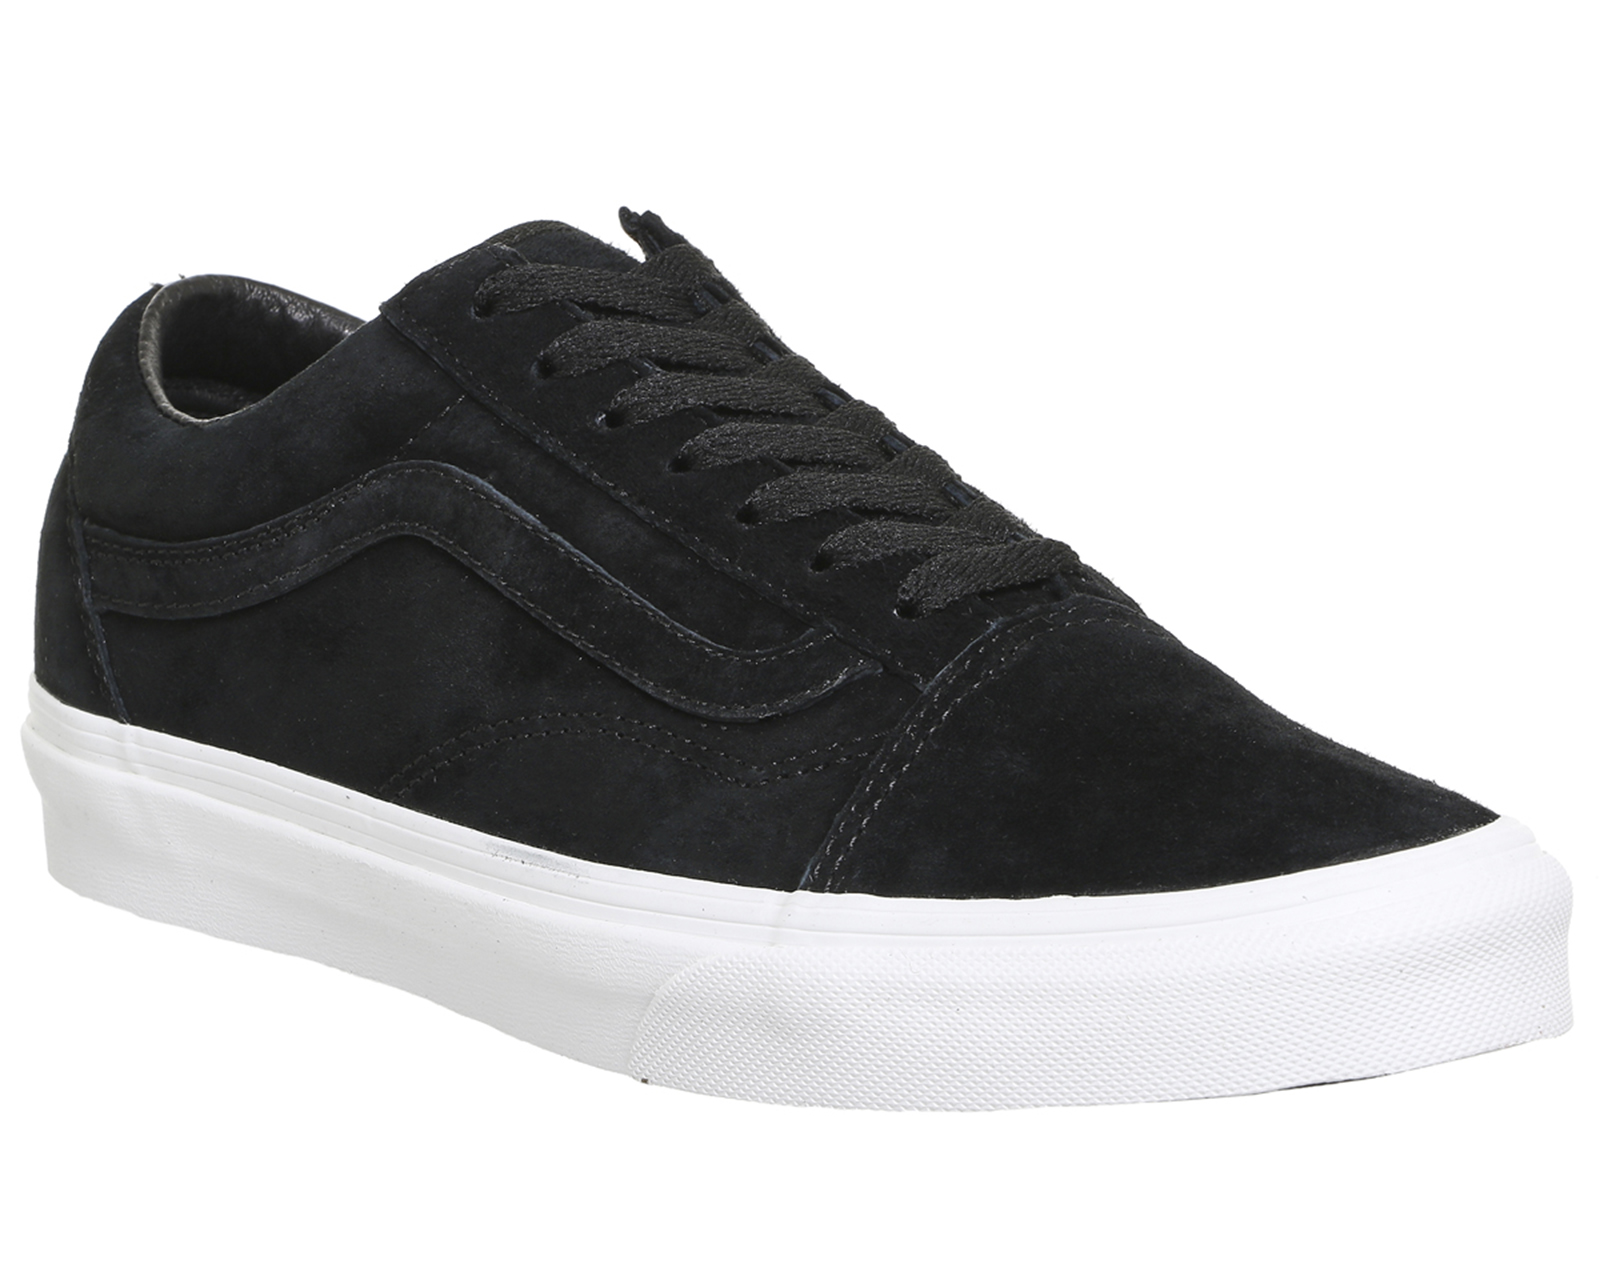 mens black suede vans shoes